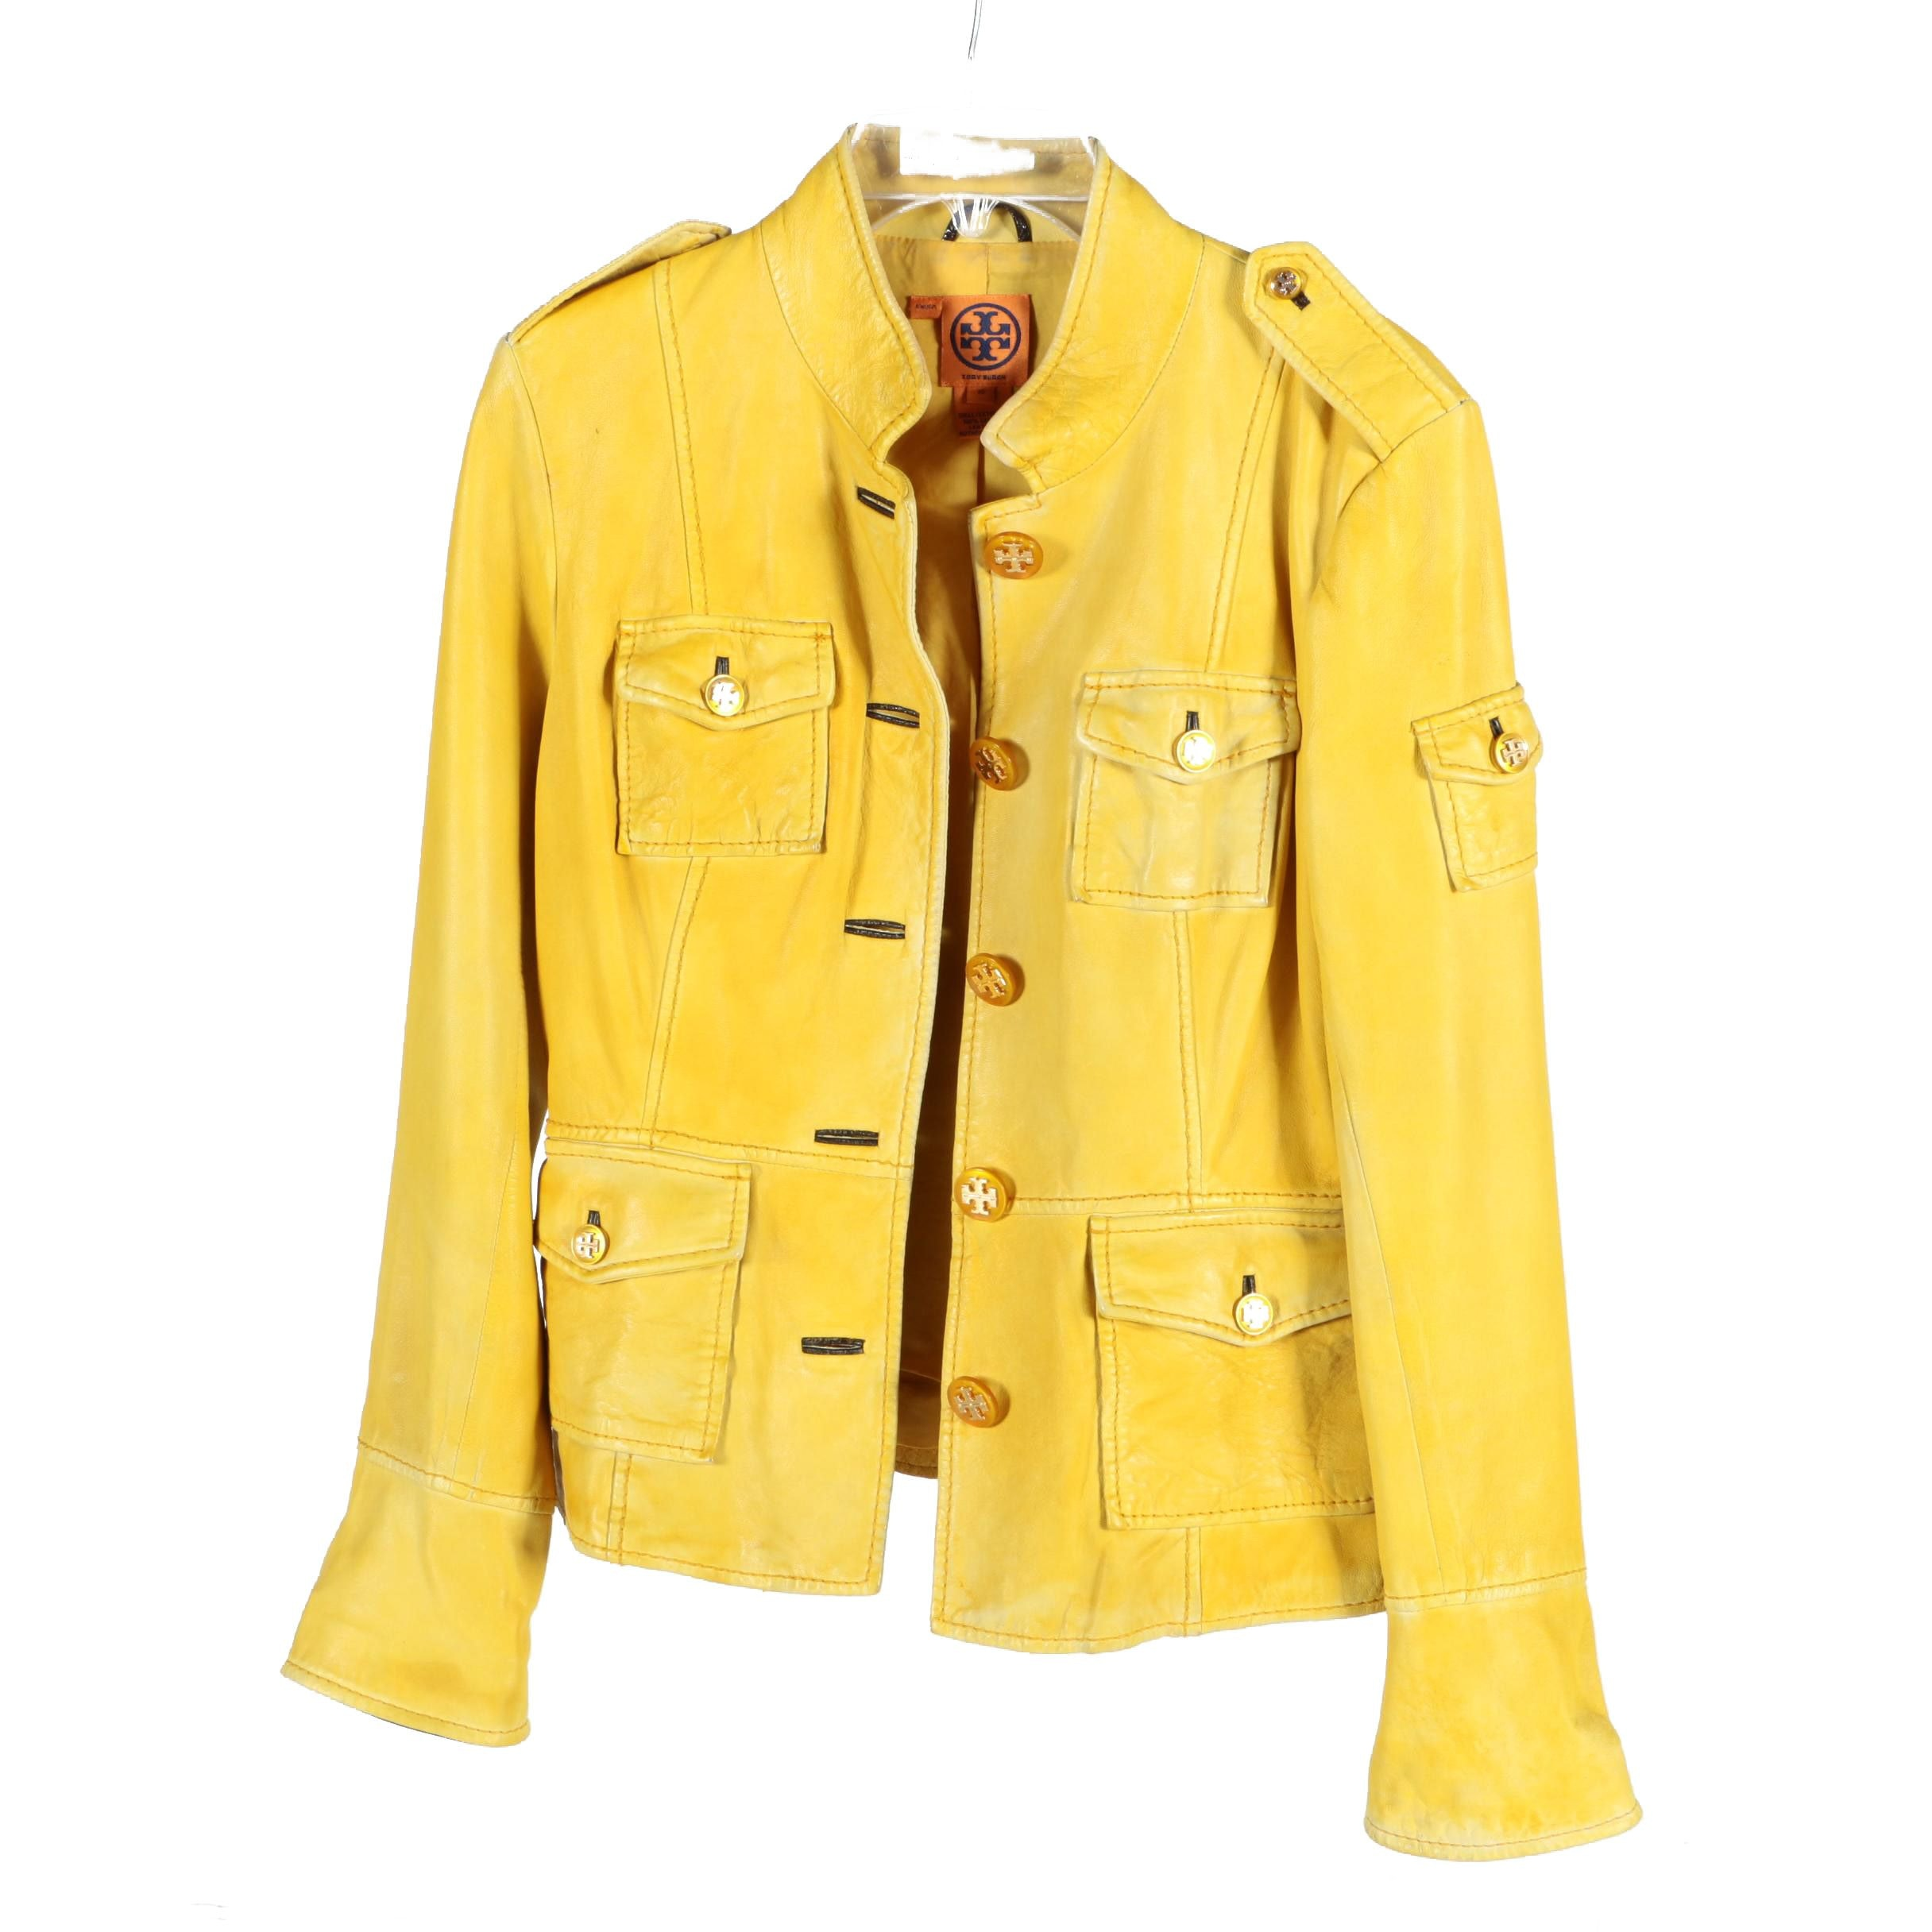 Tory Burch Sgt. Pepper Yellow Leather Military Jacket